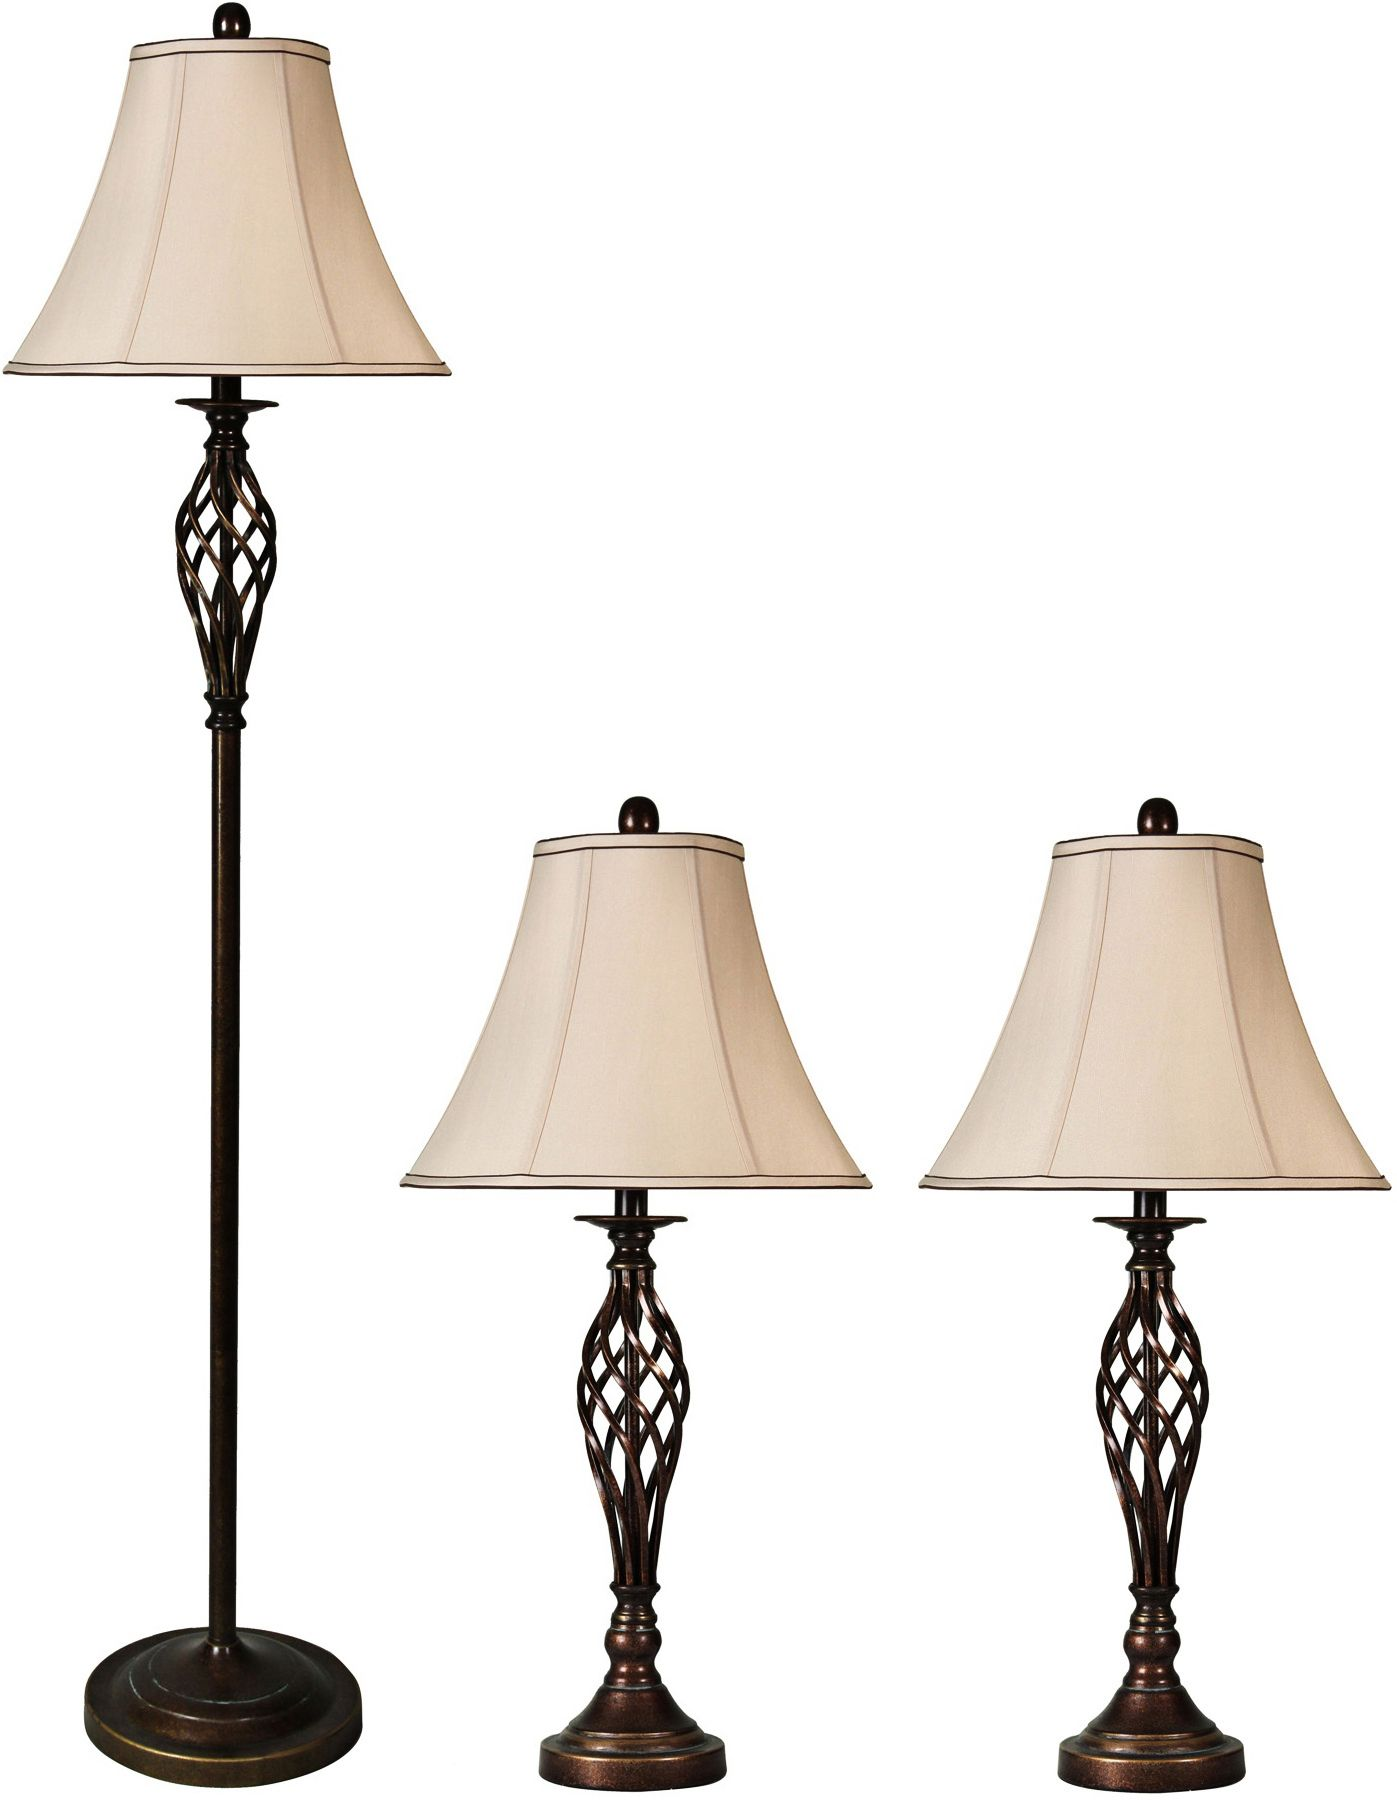 High Quality Barclay Bronze Floor And Table Lamps Set Of 3